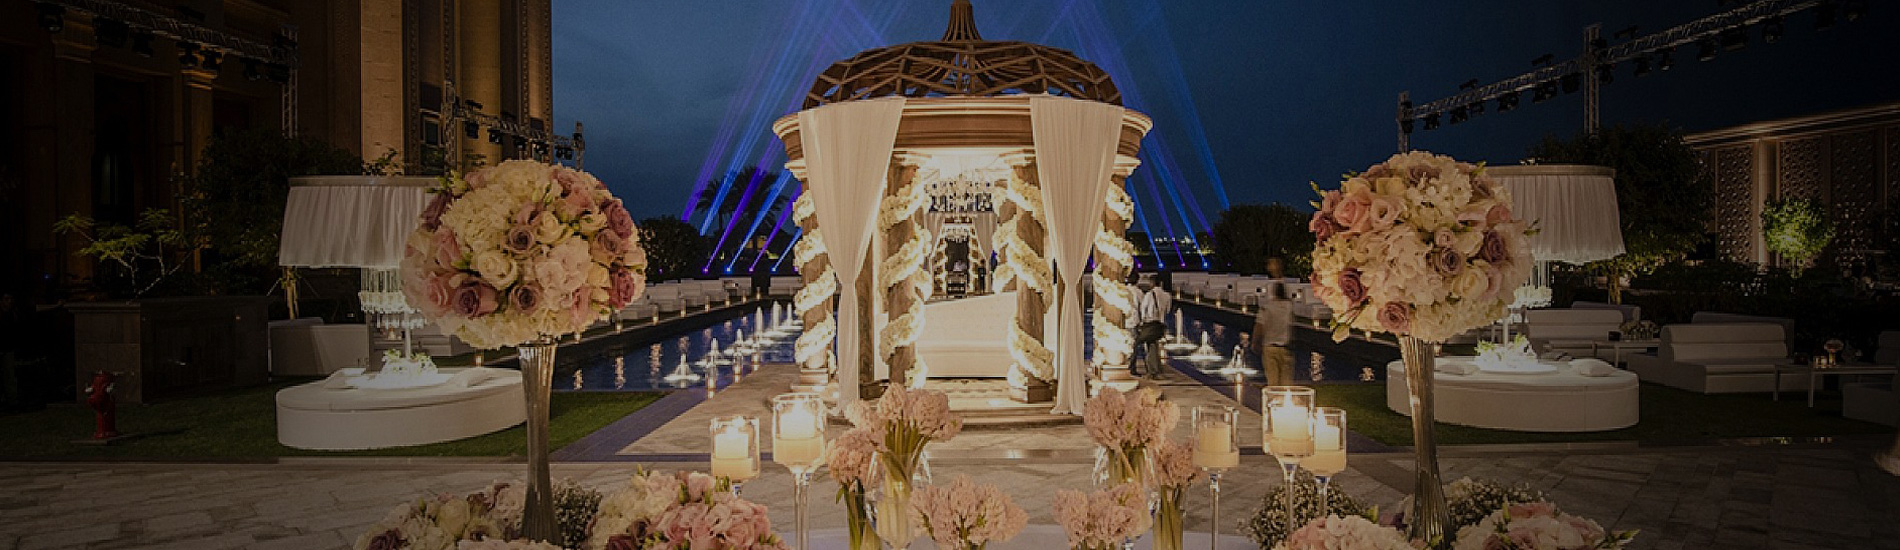 Wedding Planner In Gurgaon